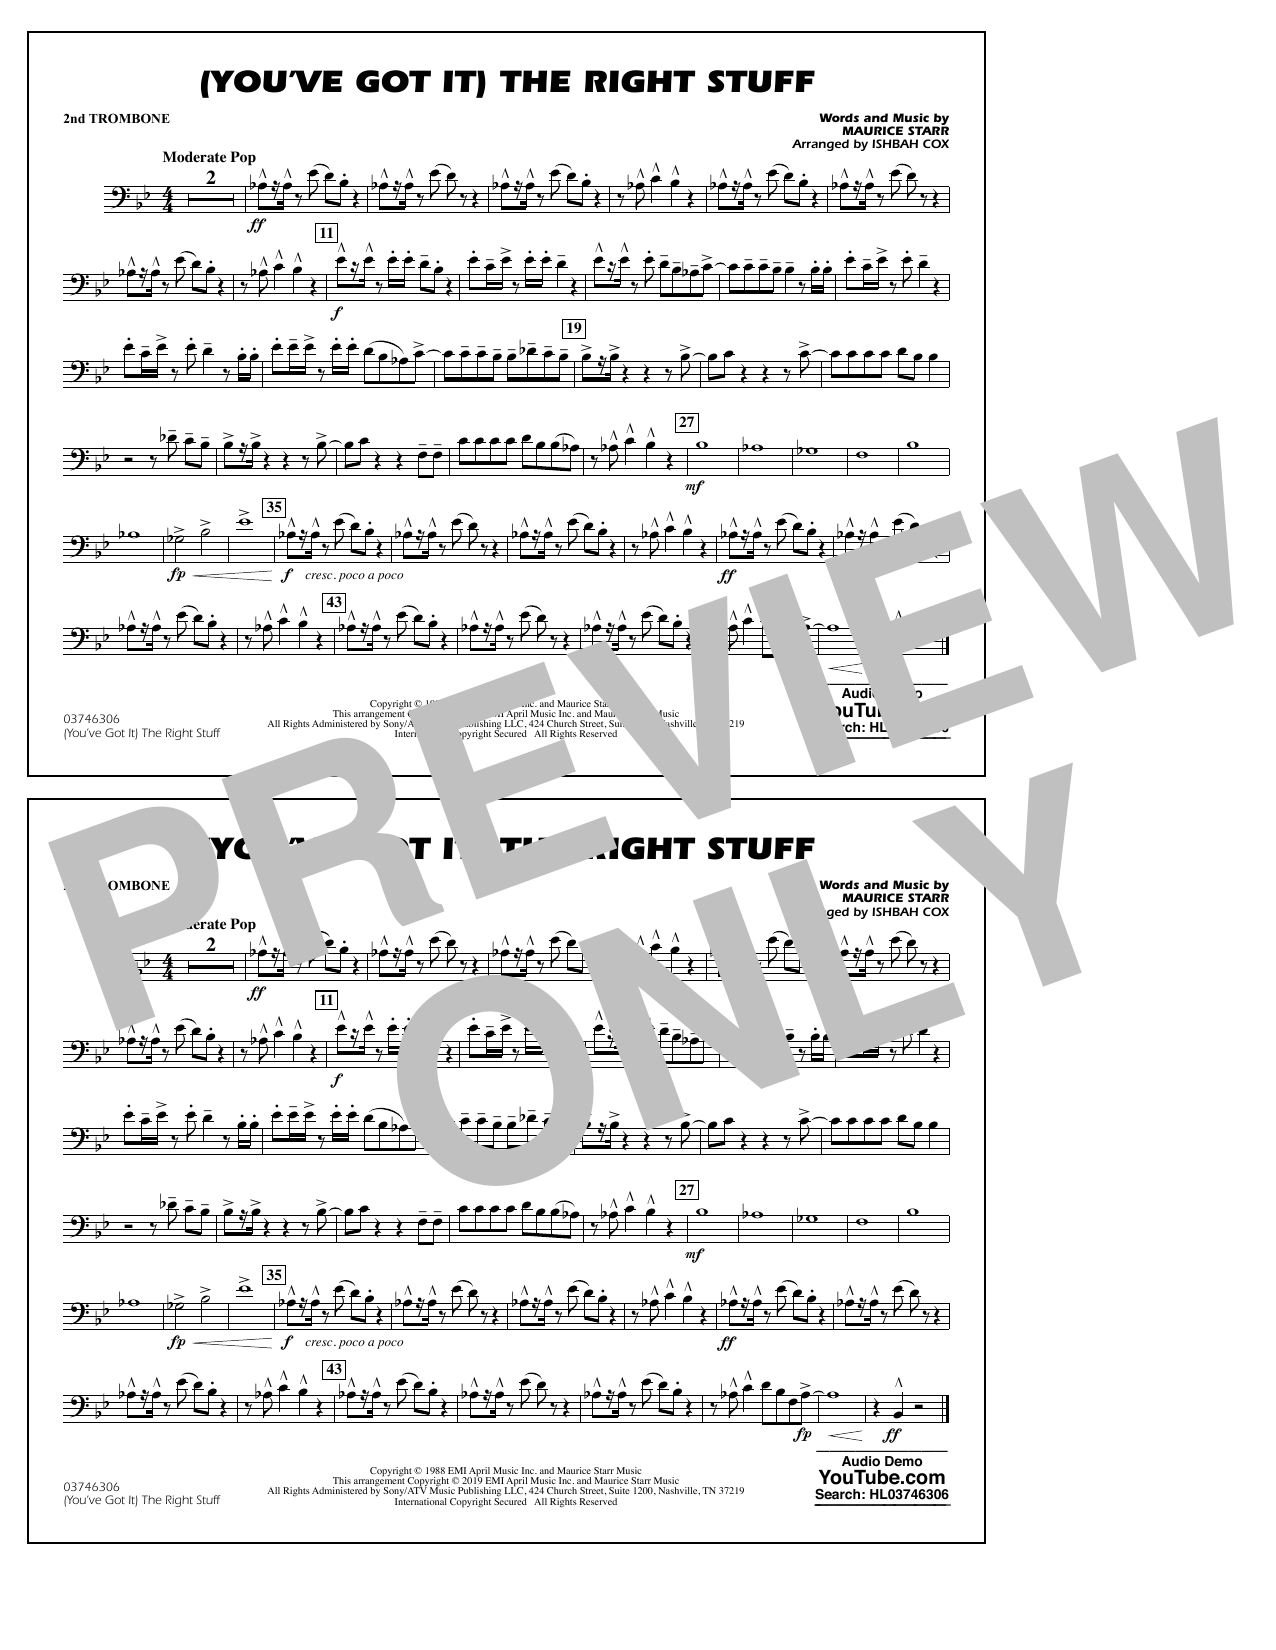 New Kids On The Block (You've Got It) The Right Stuff (arr. Ishbah Cox) - 2nd Trombone sheet music preview music notes and score for Marching Band including 1 page(s)